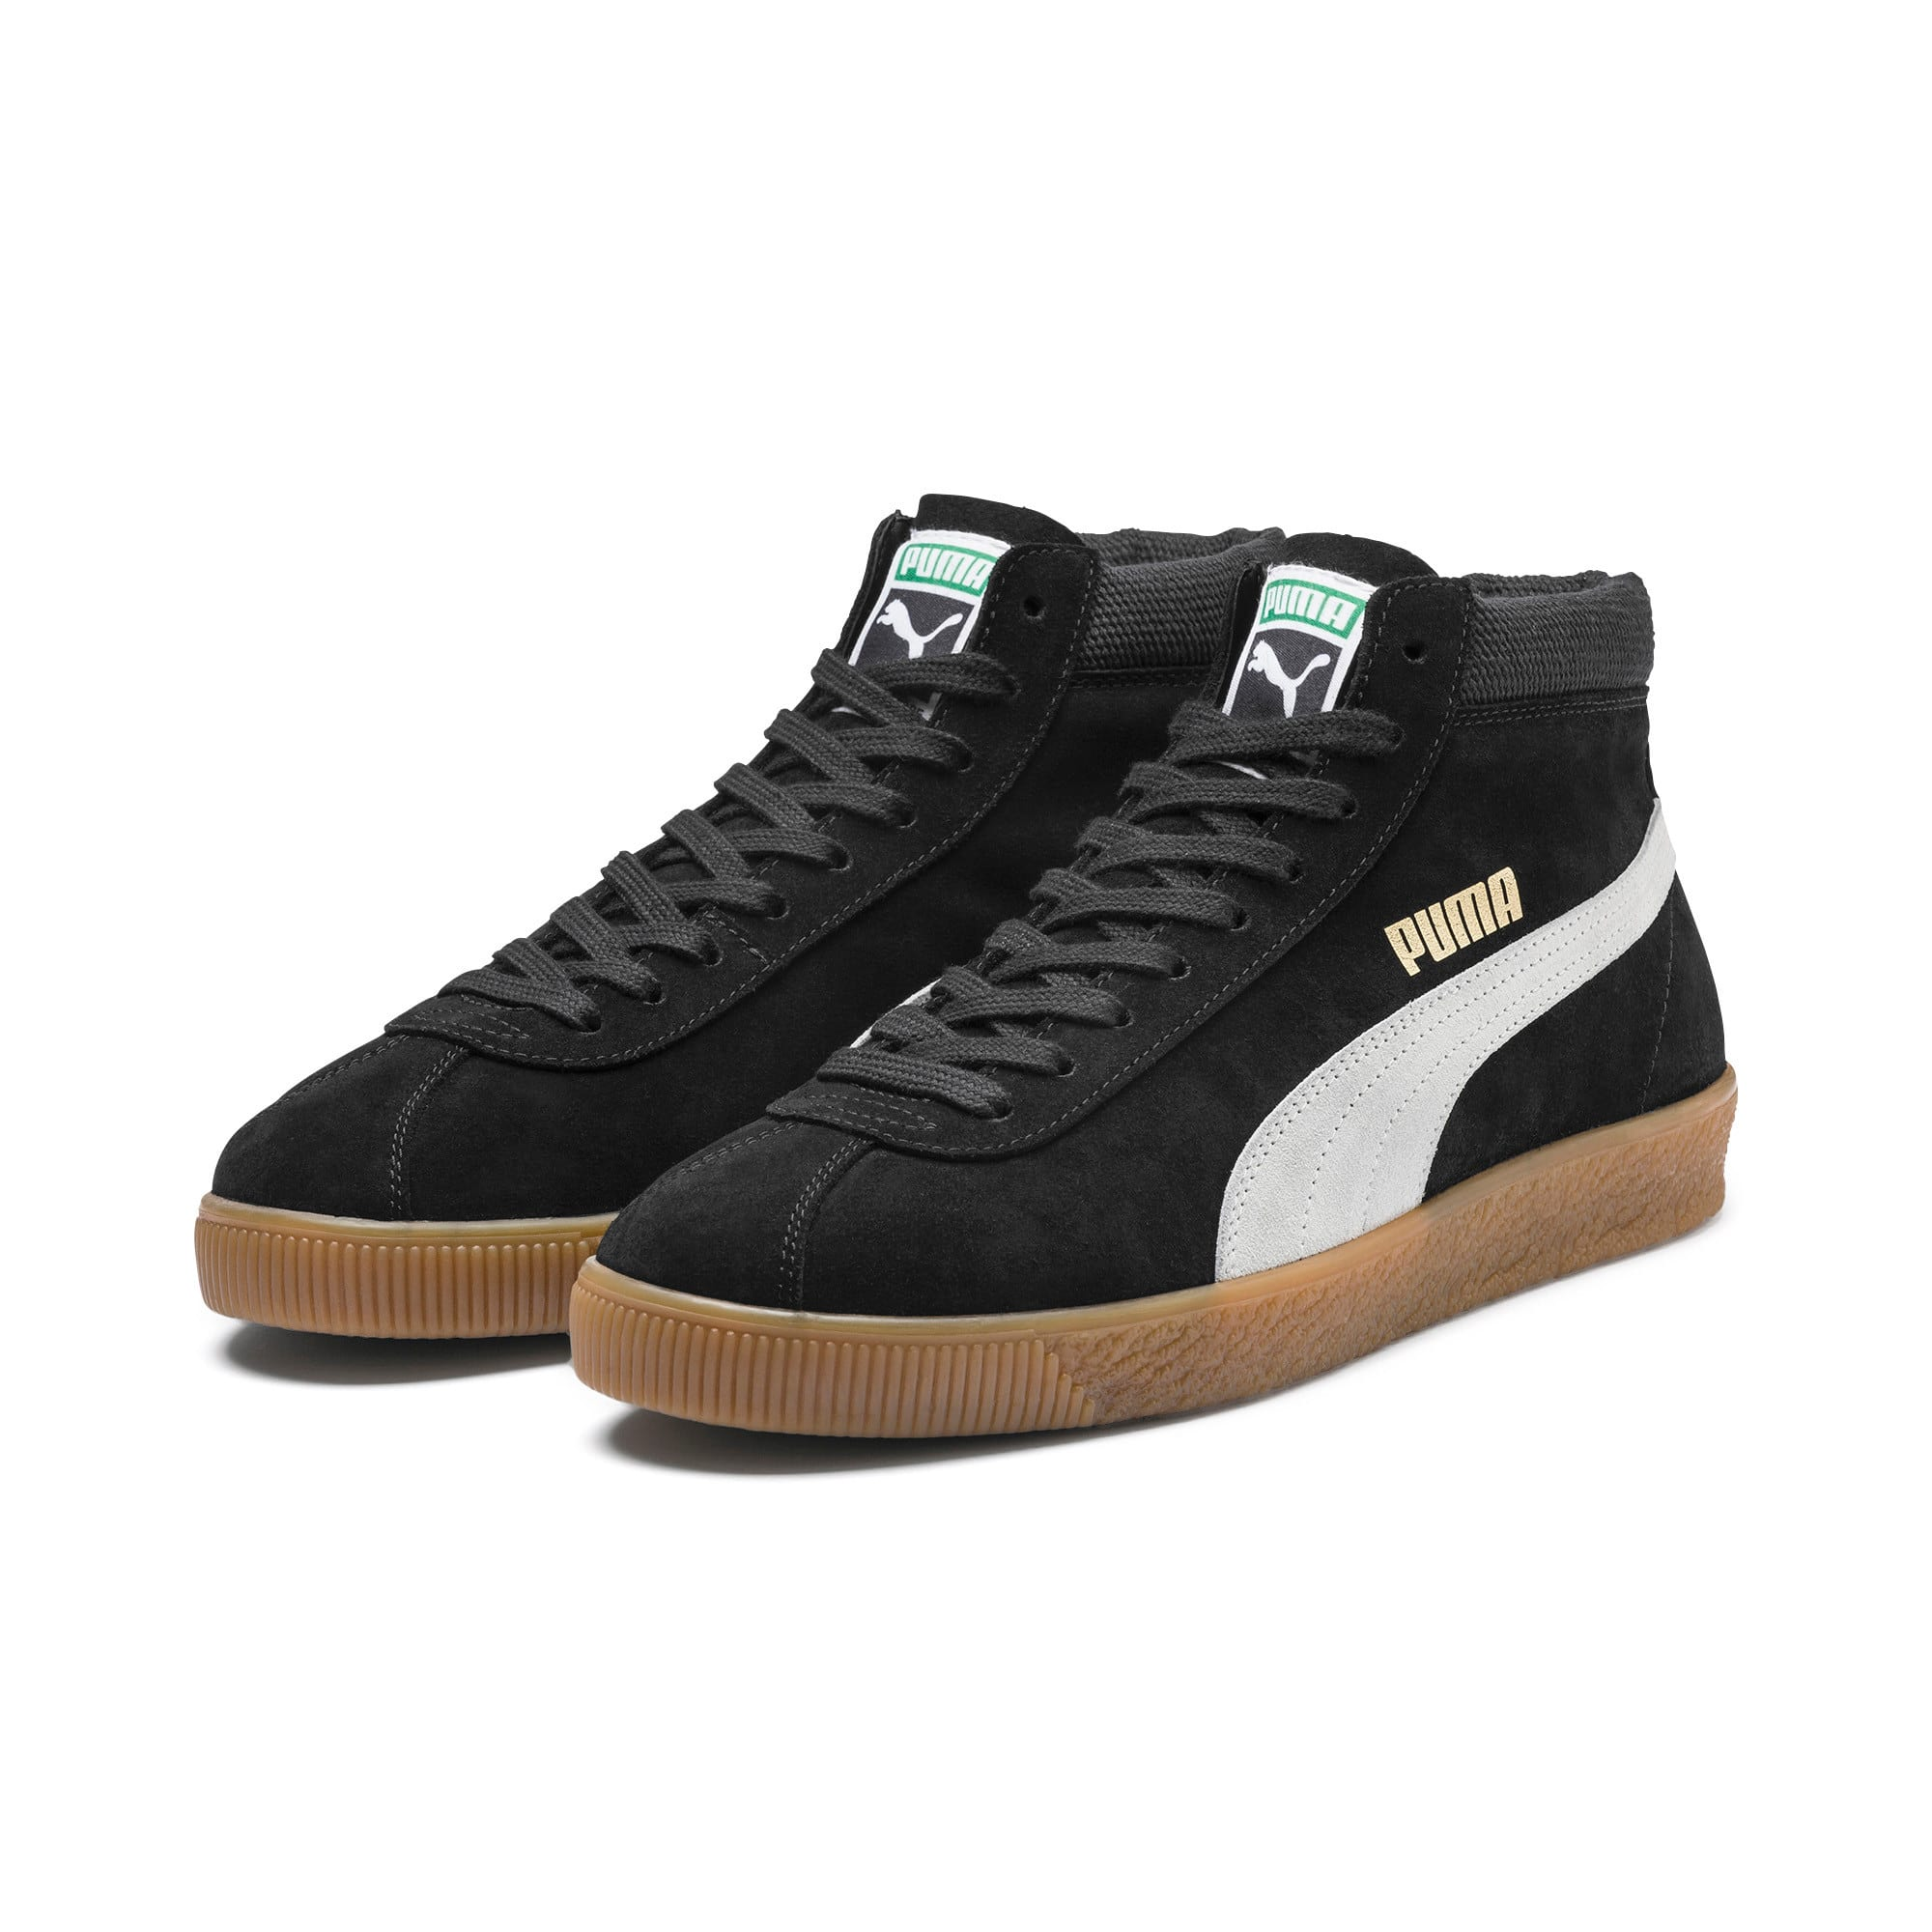 Thumbnail 2 of スウェード '68 ミッド スニーカー, Puma Black-Whisper White, medium-JPN